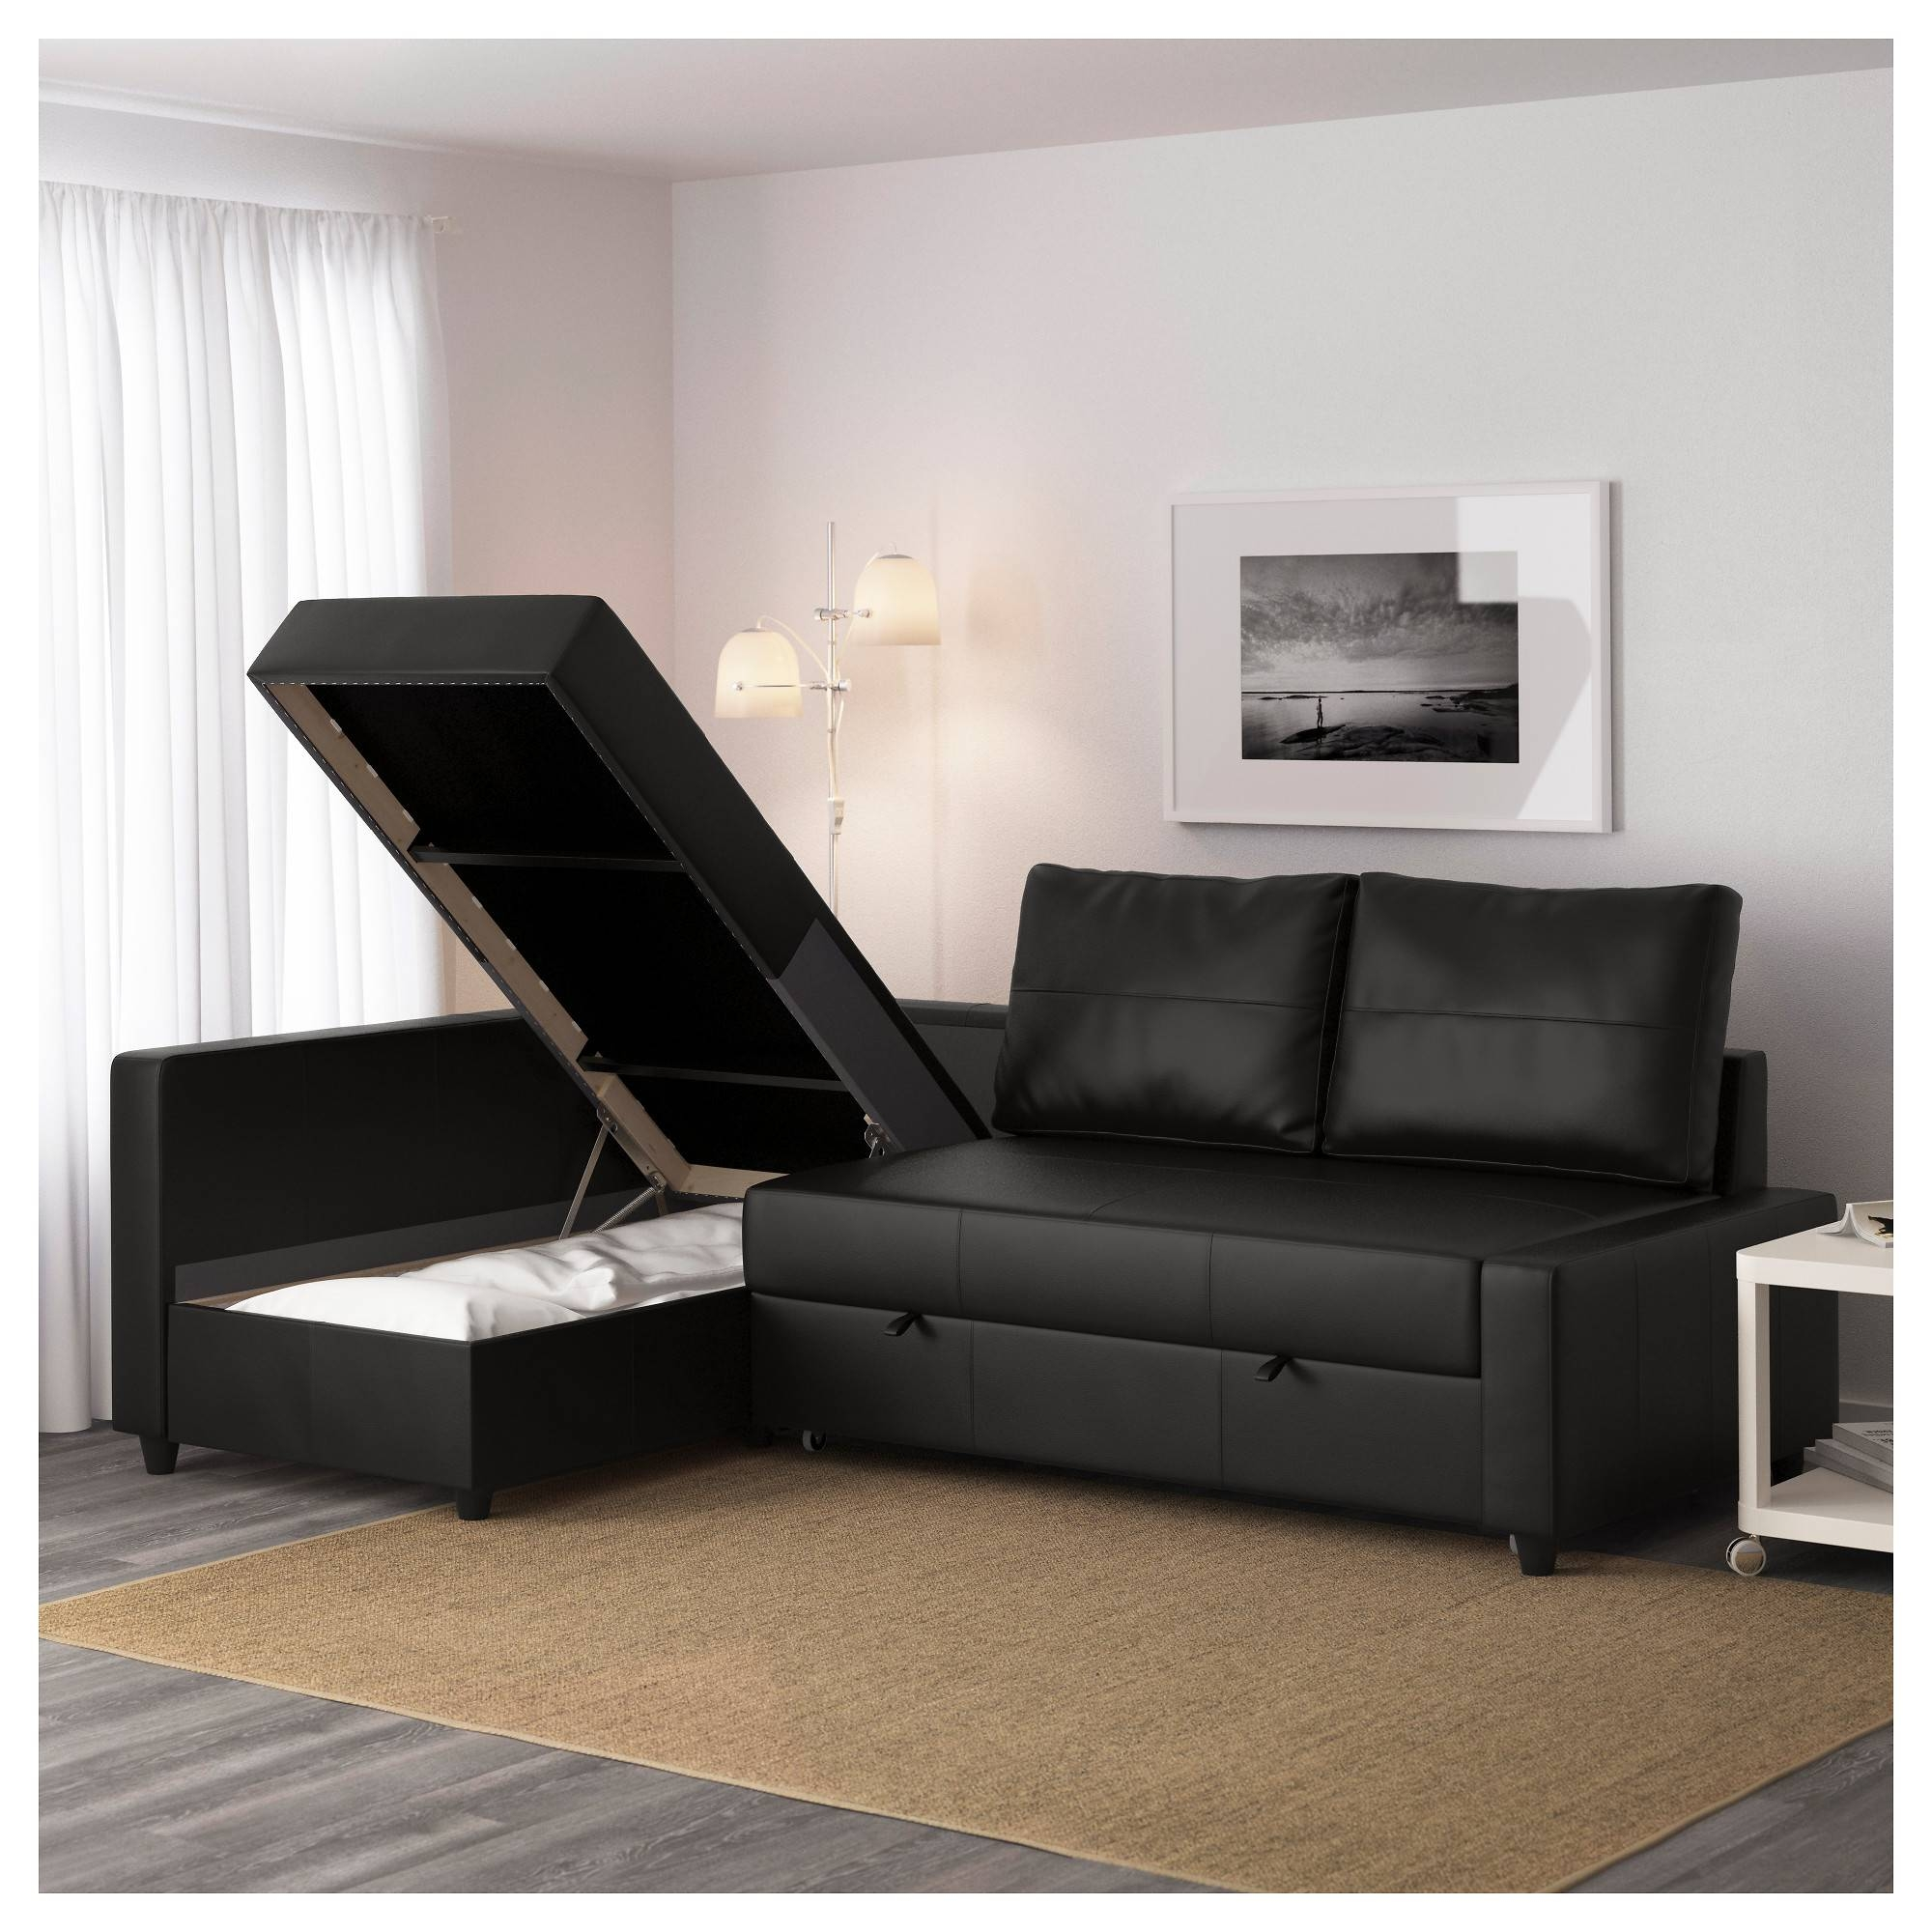 Friheten Sleeper Sectional,3 Seat W/storage - Skiftebo Dark Gray in Sleeper Sectional Sofa Ikea (Image 5 of 25)